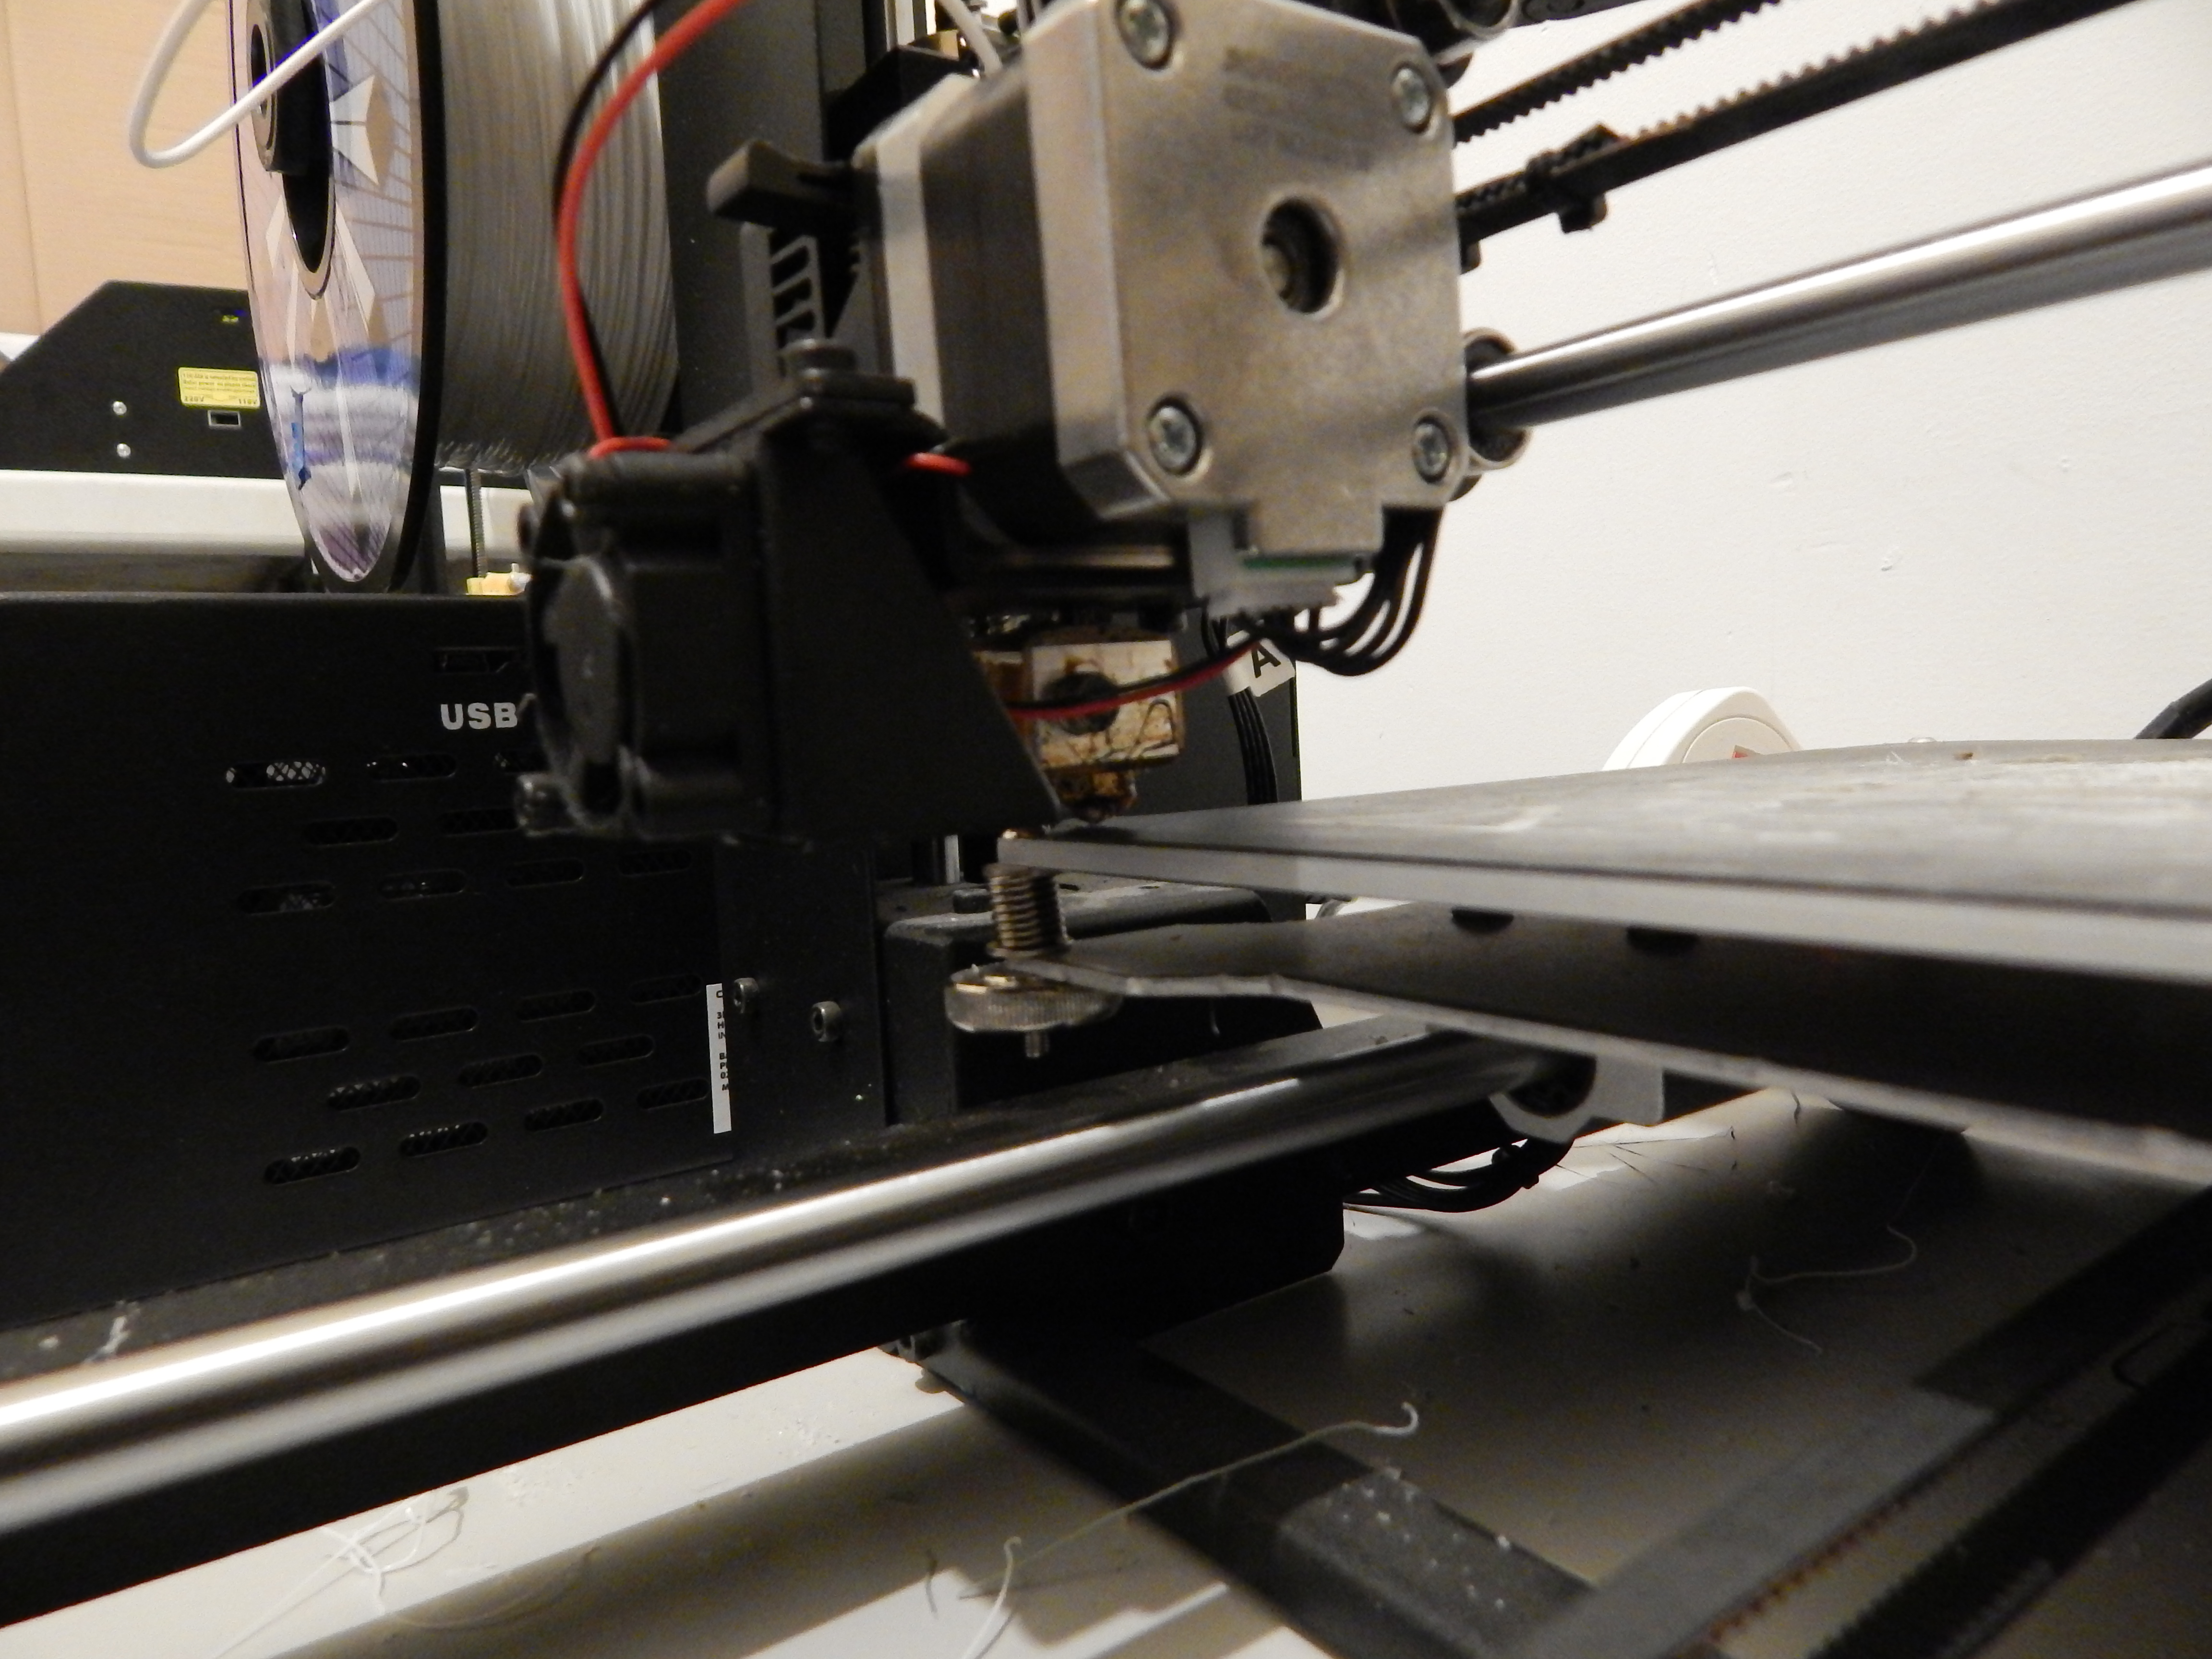 Picture of Printing TPU on a Stock 3d Printer